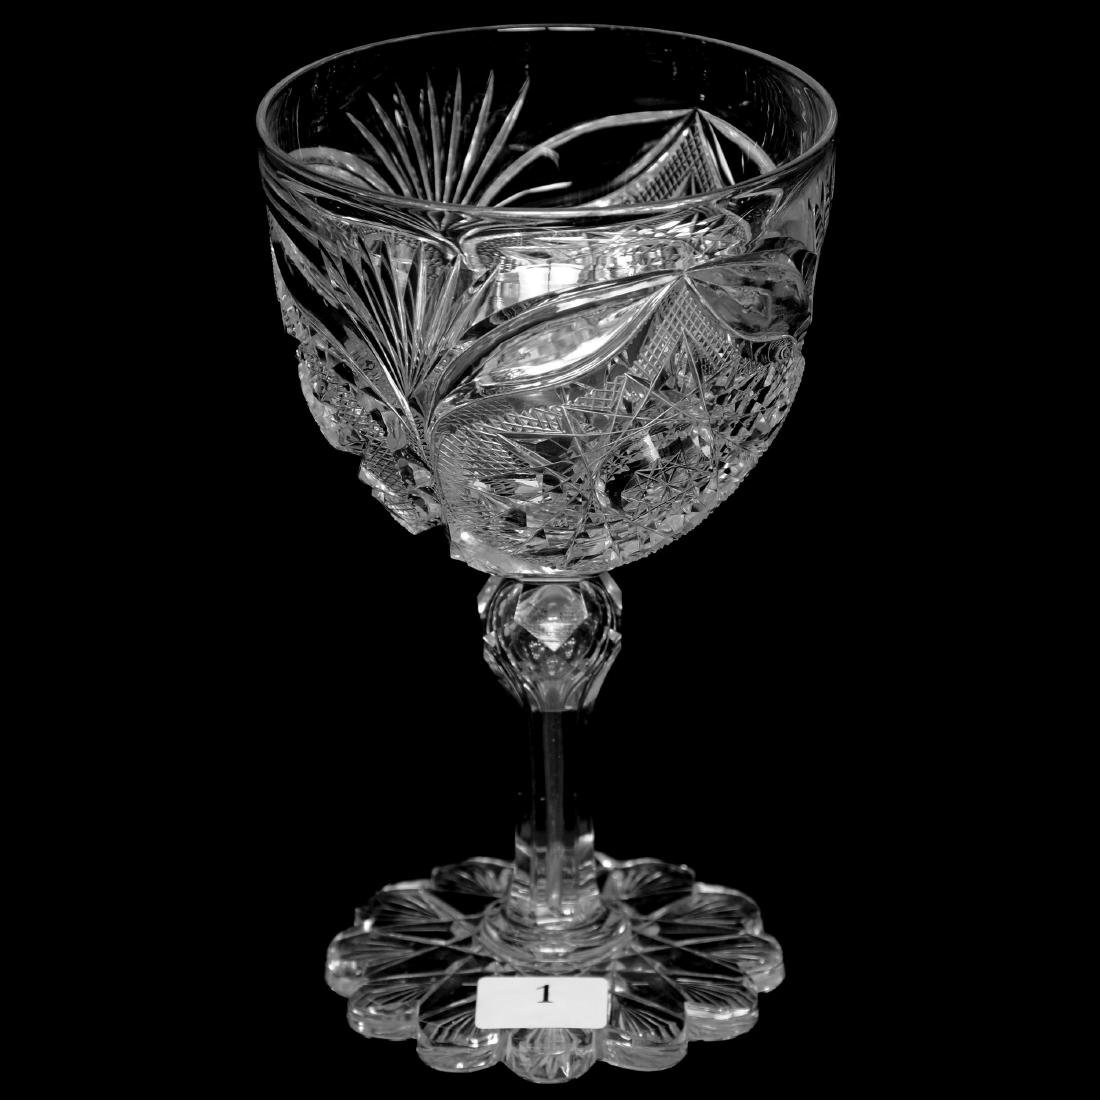 Water Goblet - ABCG